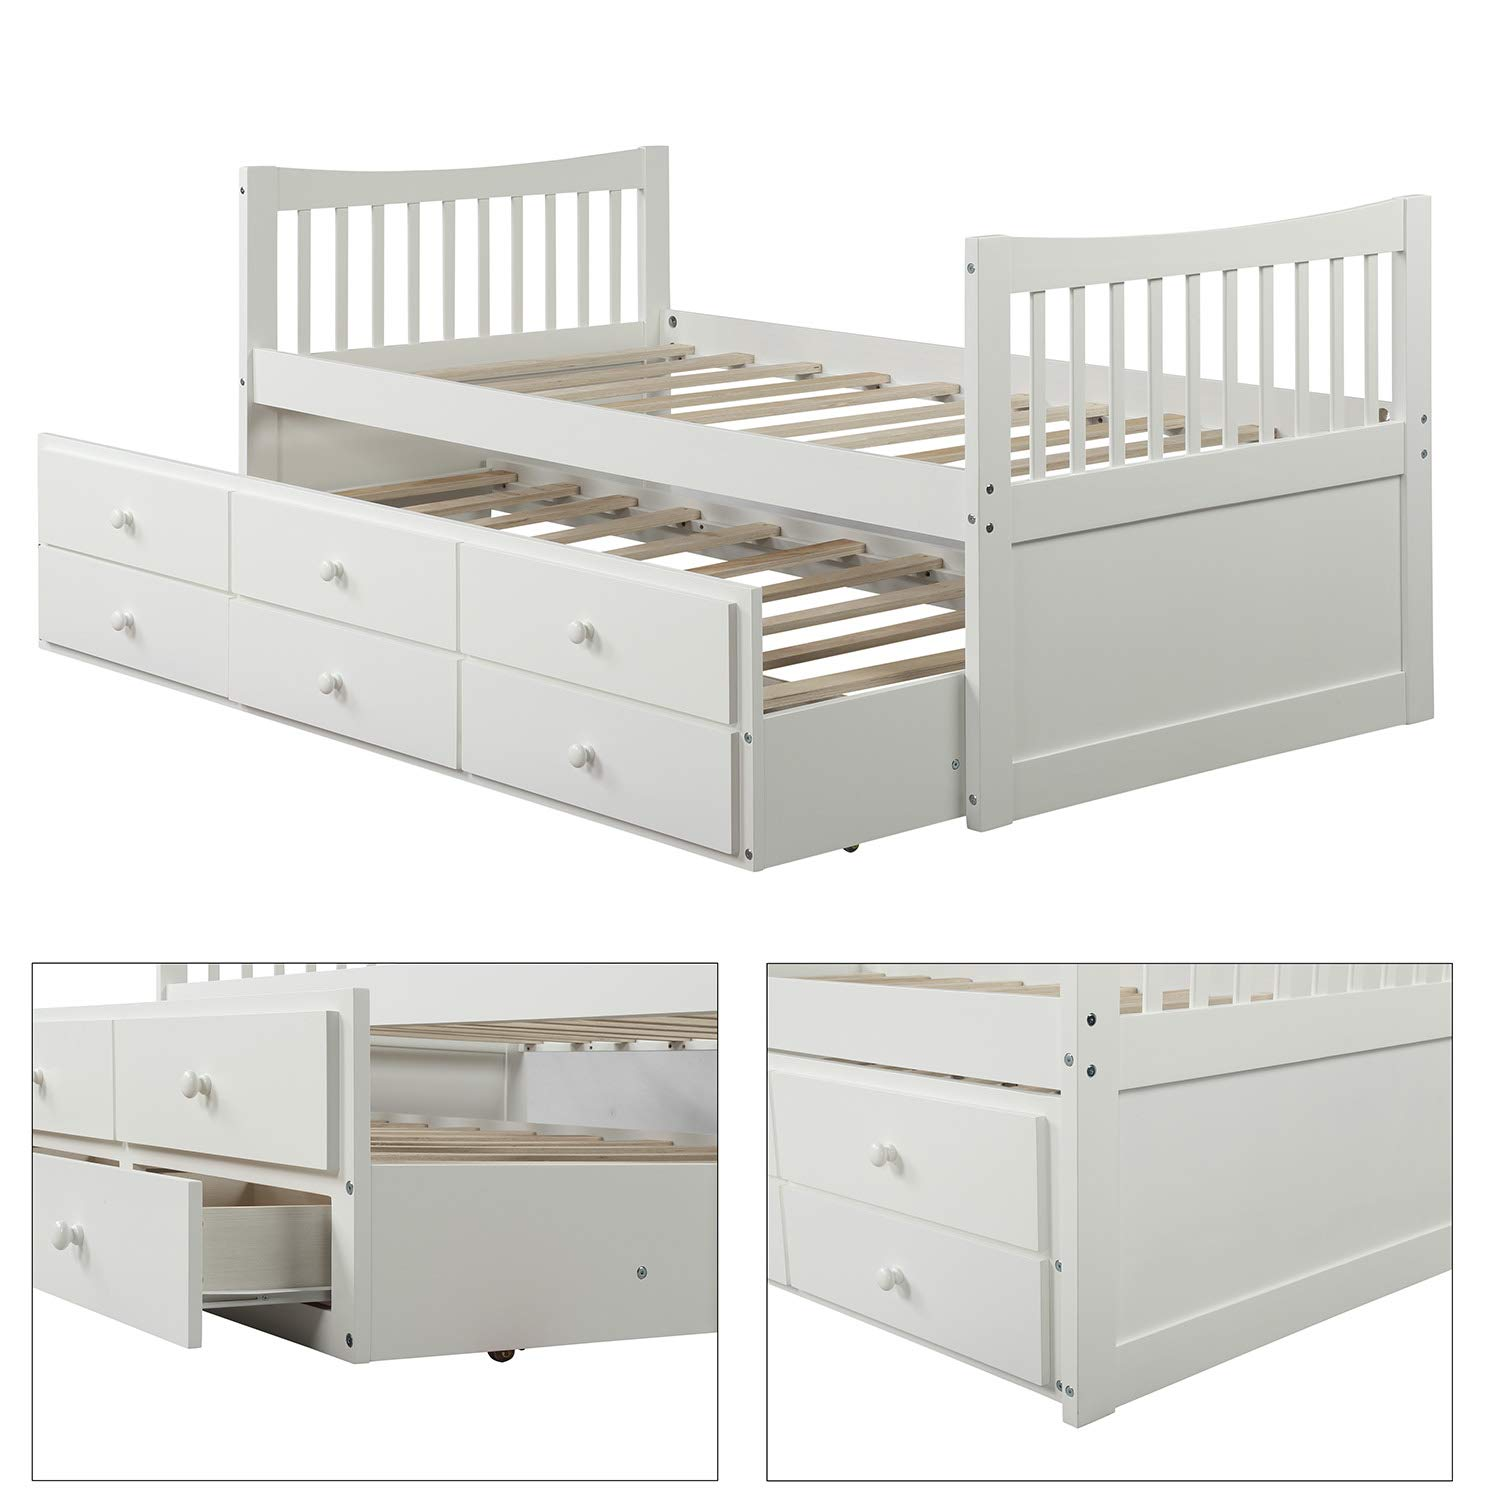 Twin Captain s Bed Storage Daybed with Trundle and Drawers for Kids Teens and Adults, White